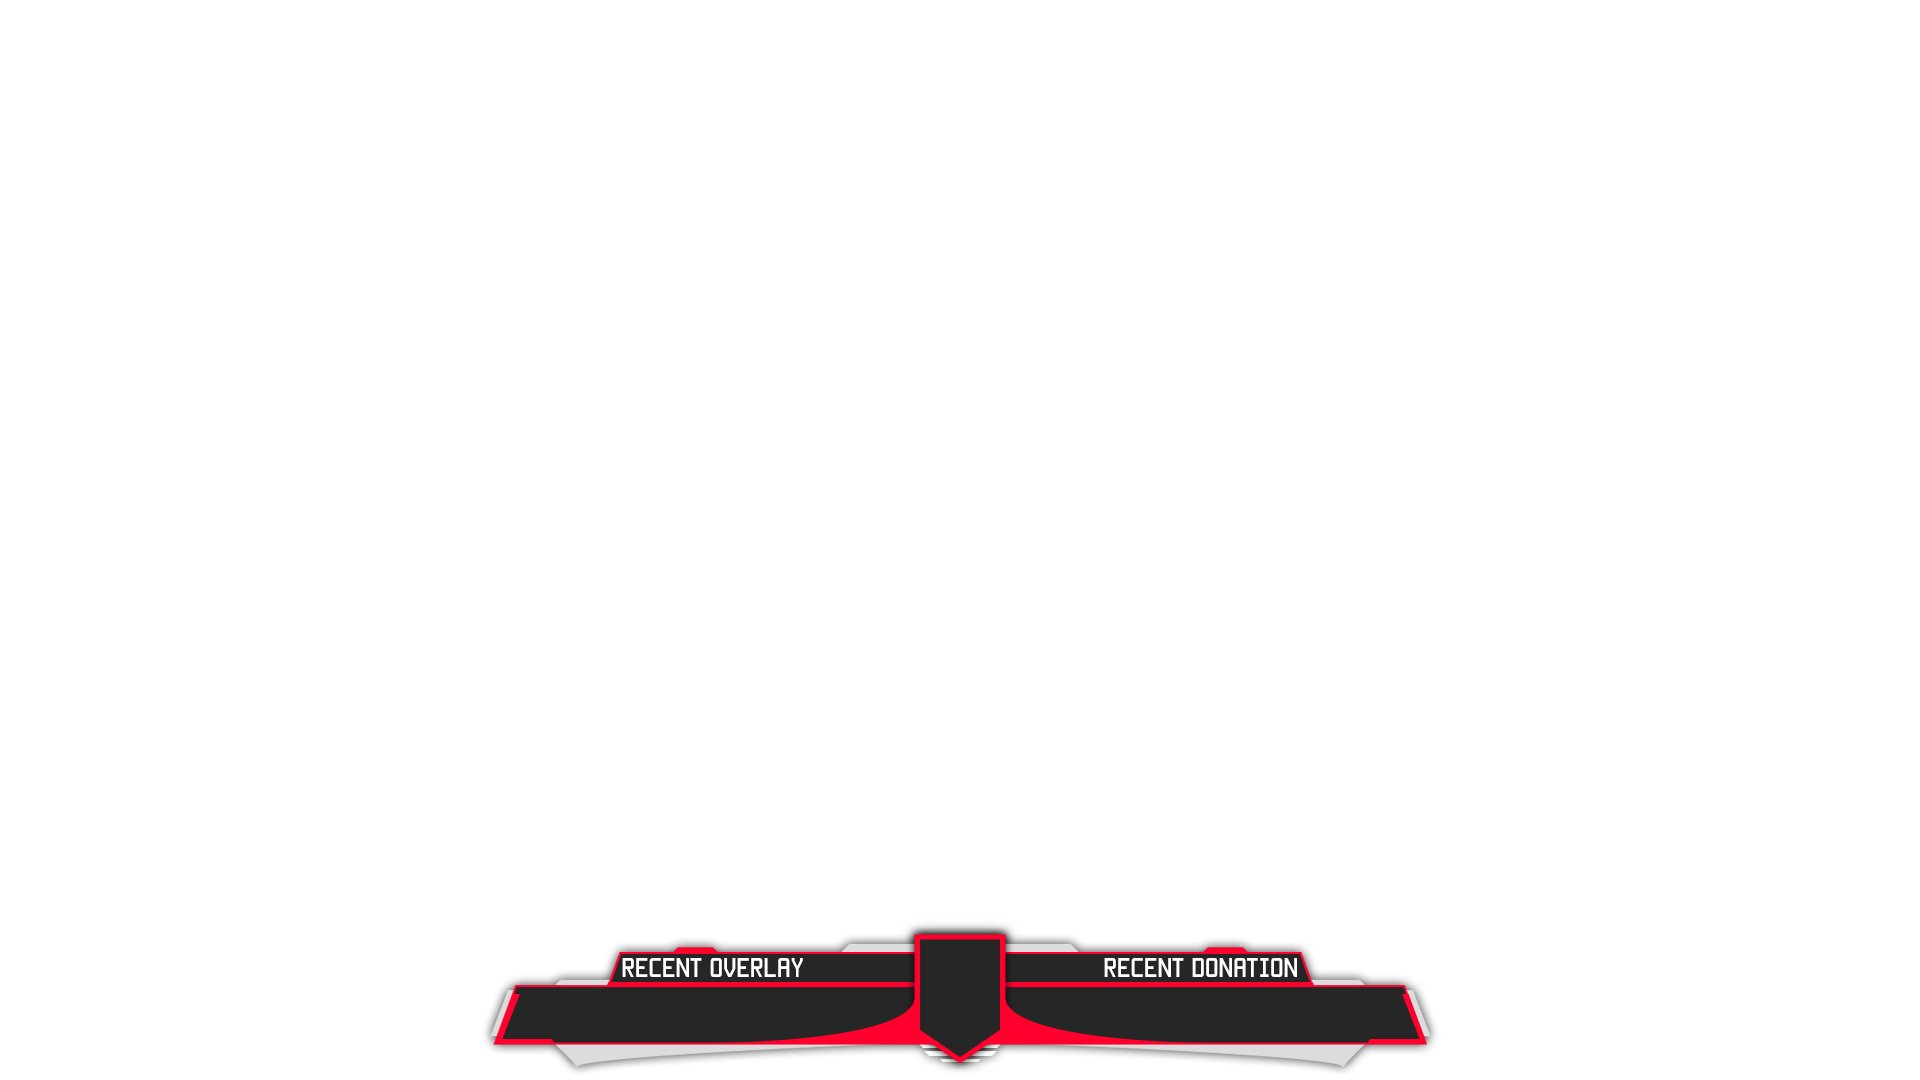 twitch and hitbox overlay